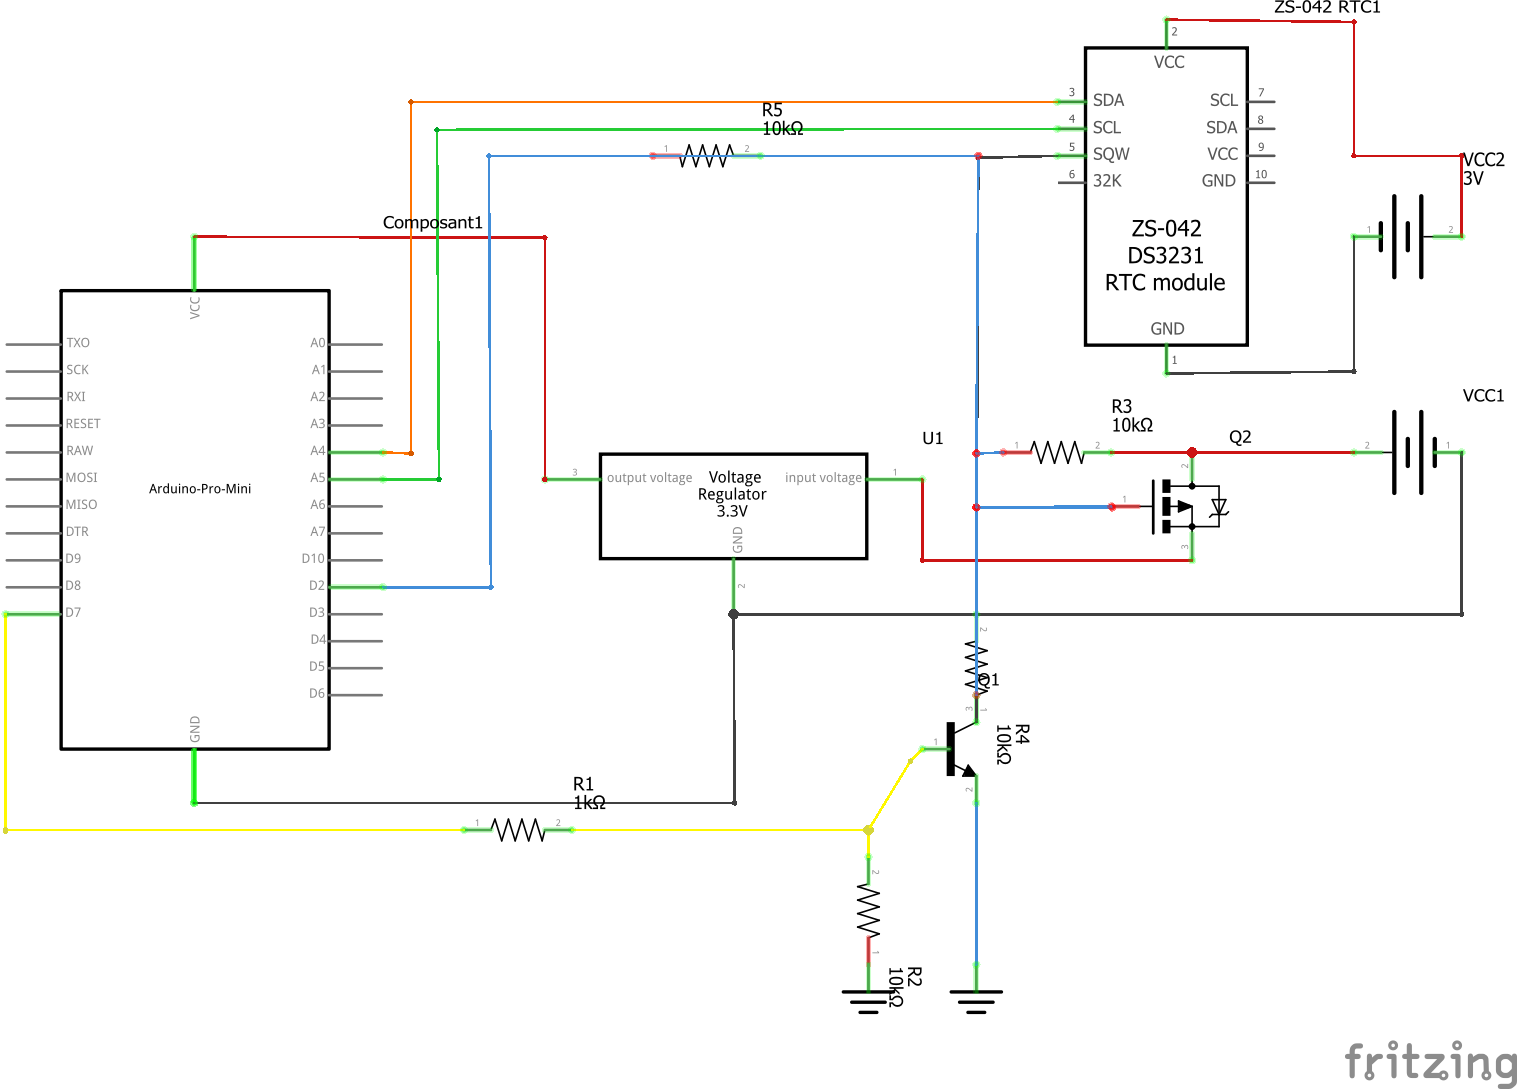 Power On Off With Ds323rtc Npn Transistor Diagram Http Hadesmechnorthwesternedu Indexphp Thanks A Lot For Your Valuable Contribution In This Forum And Advices